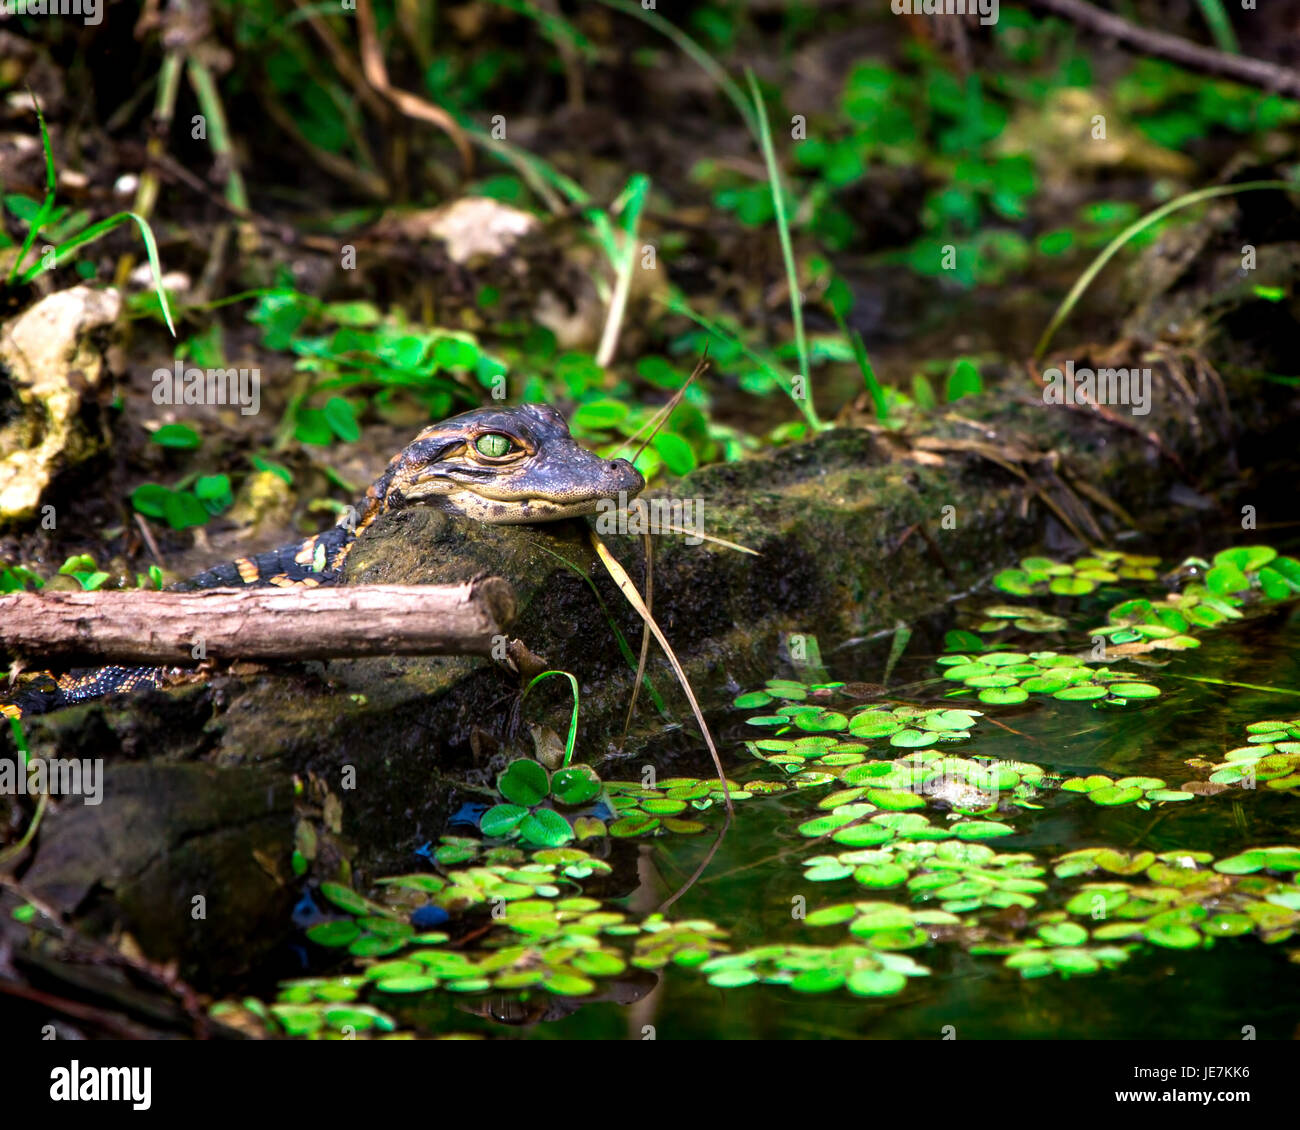 A baby alligator checks things out in the Florida Everglades. The mother alligator was keeping a close eye on thigs Stock Photo